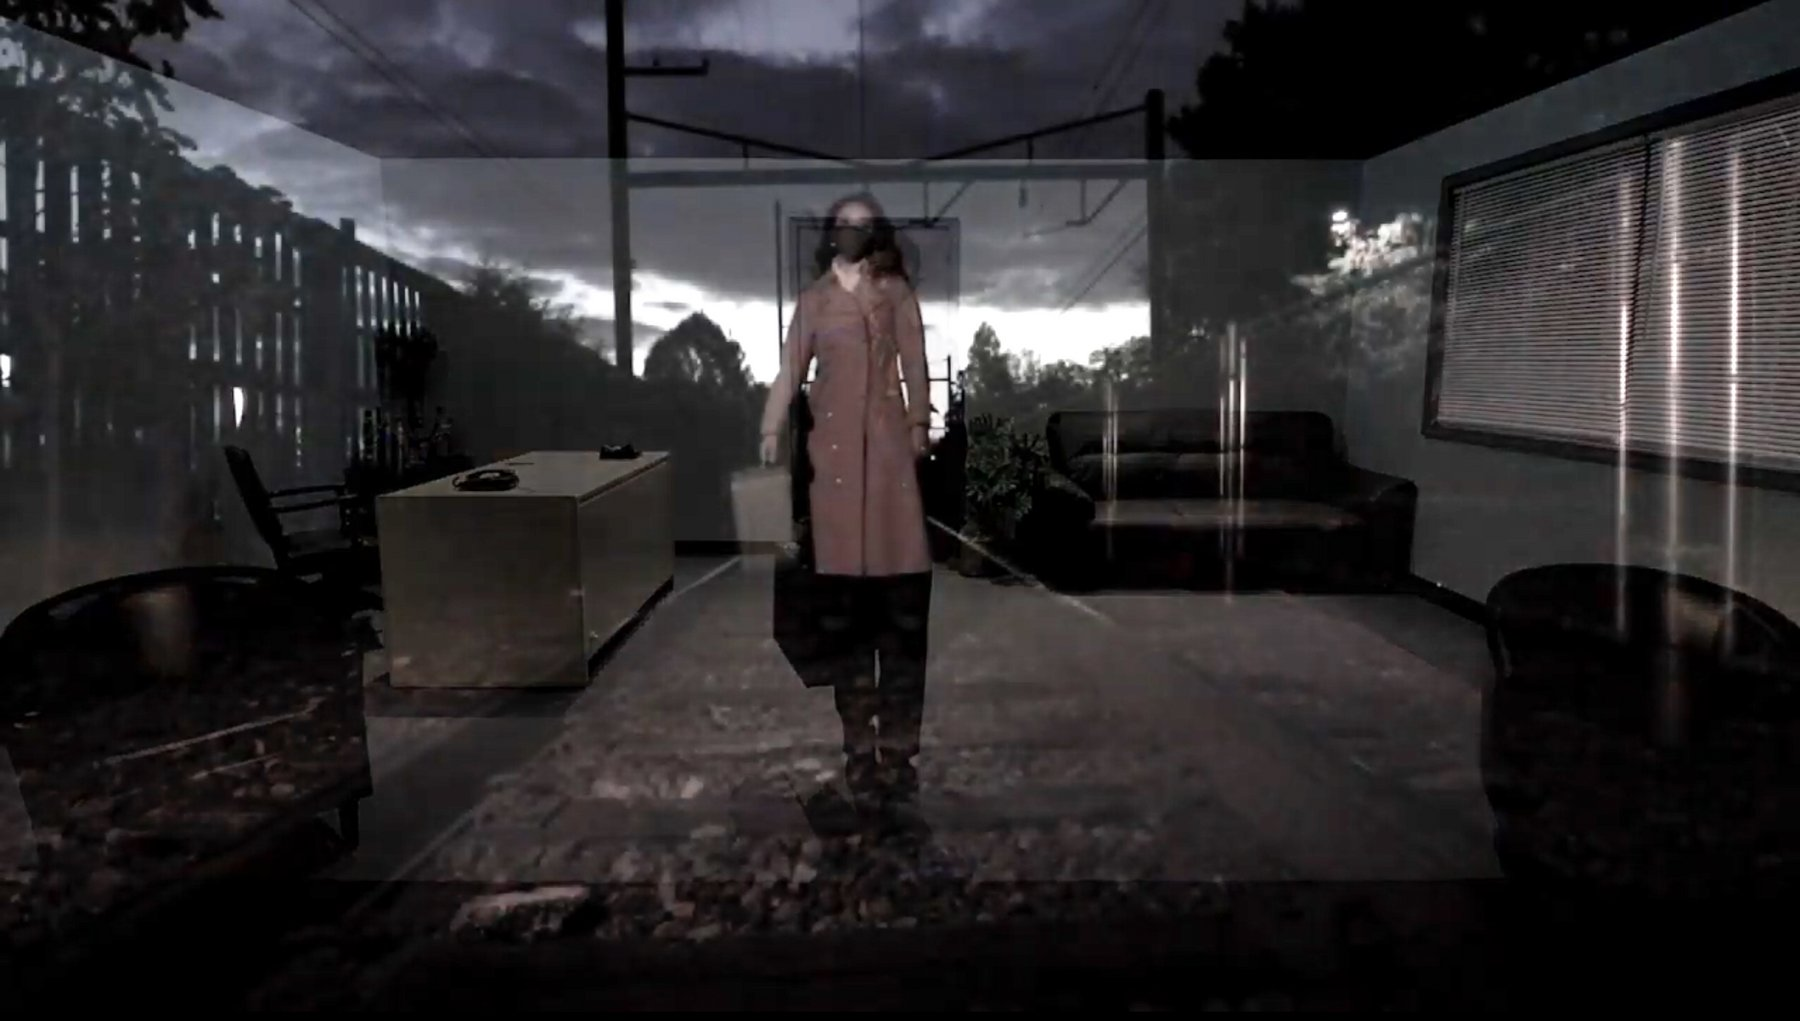 Layered images show a woman in a trench coat wearing a face mask standing on train tracks and an office scene.